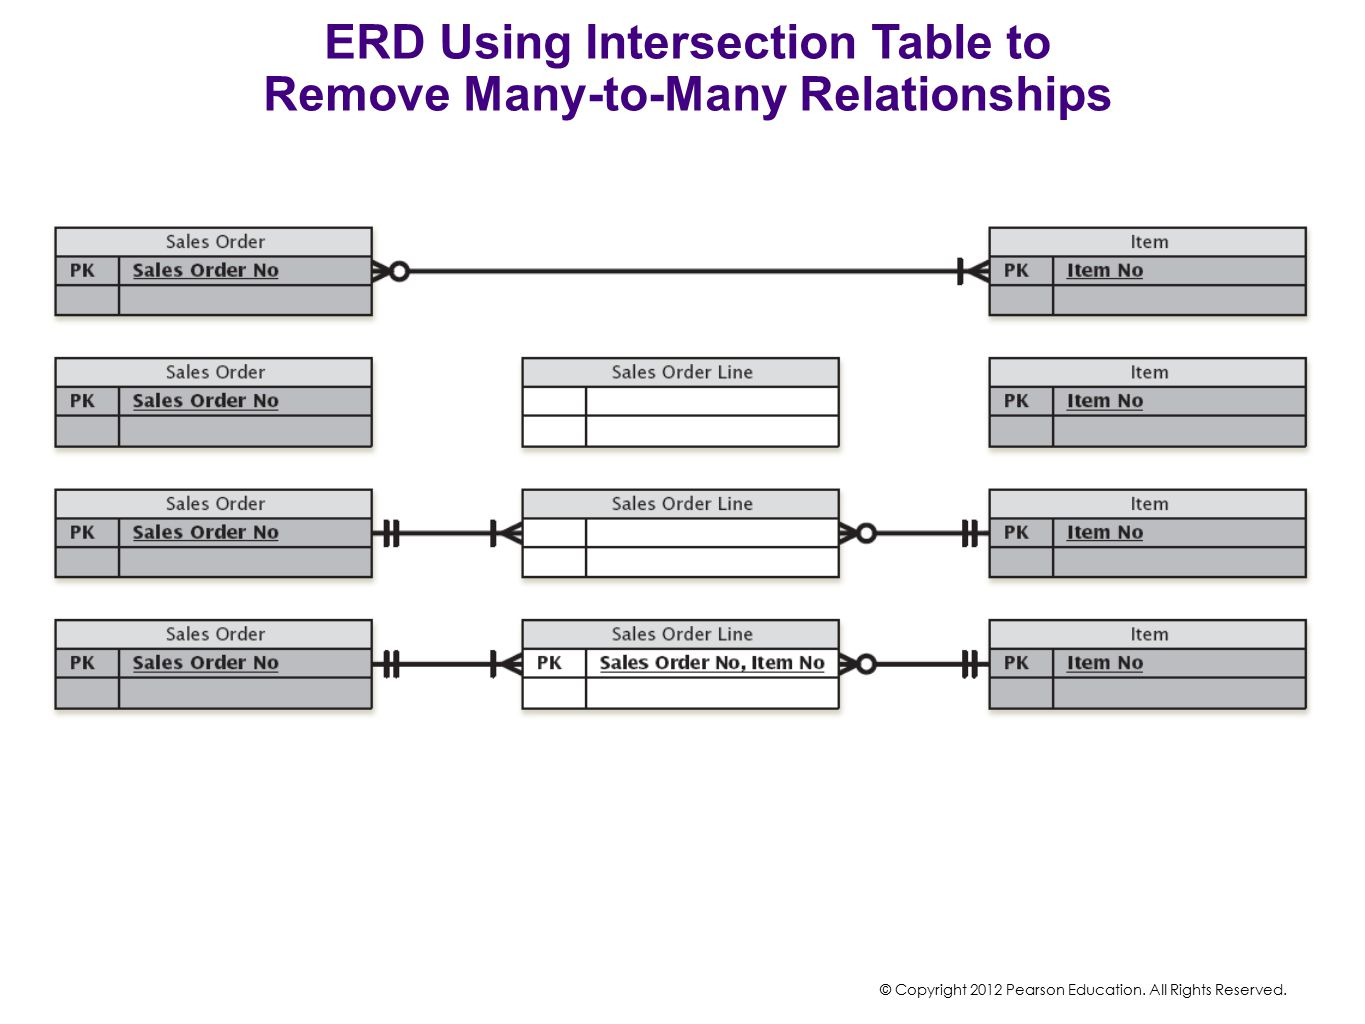 ERD Using Intersection Table to Remove Many-to-Many Relationships